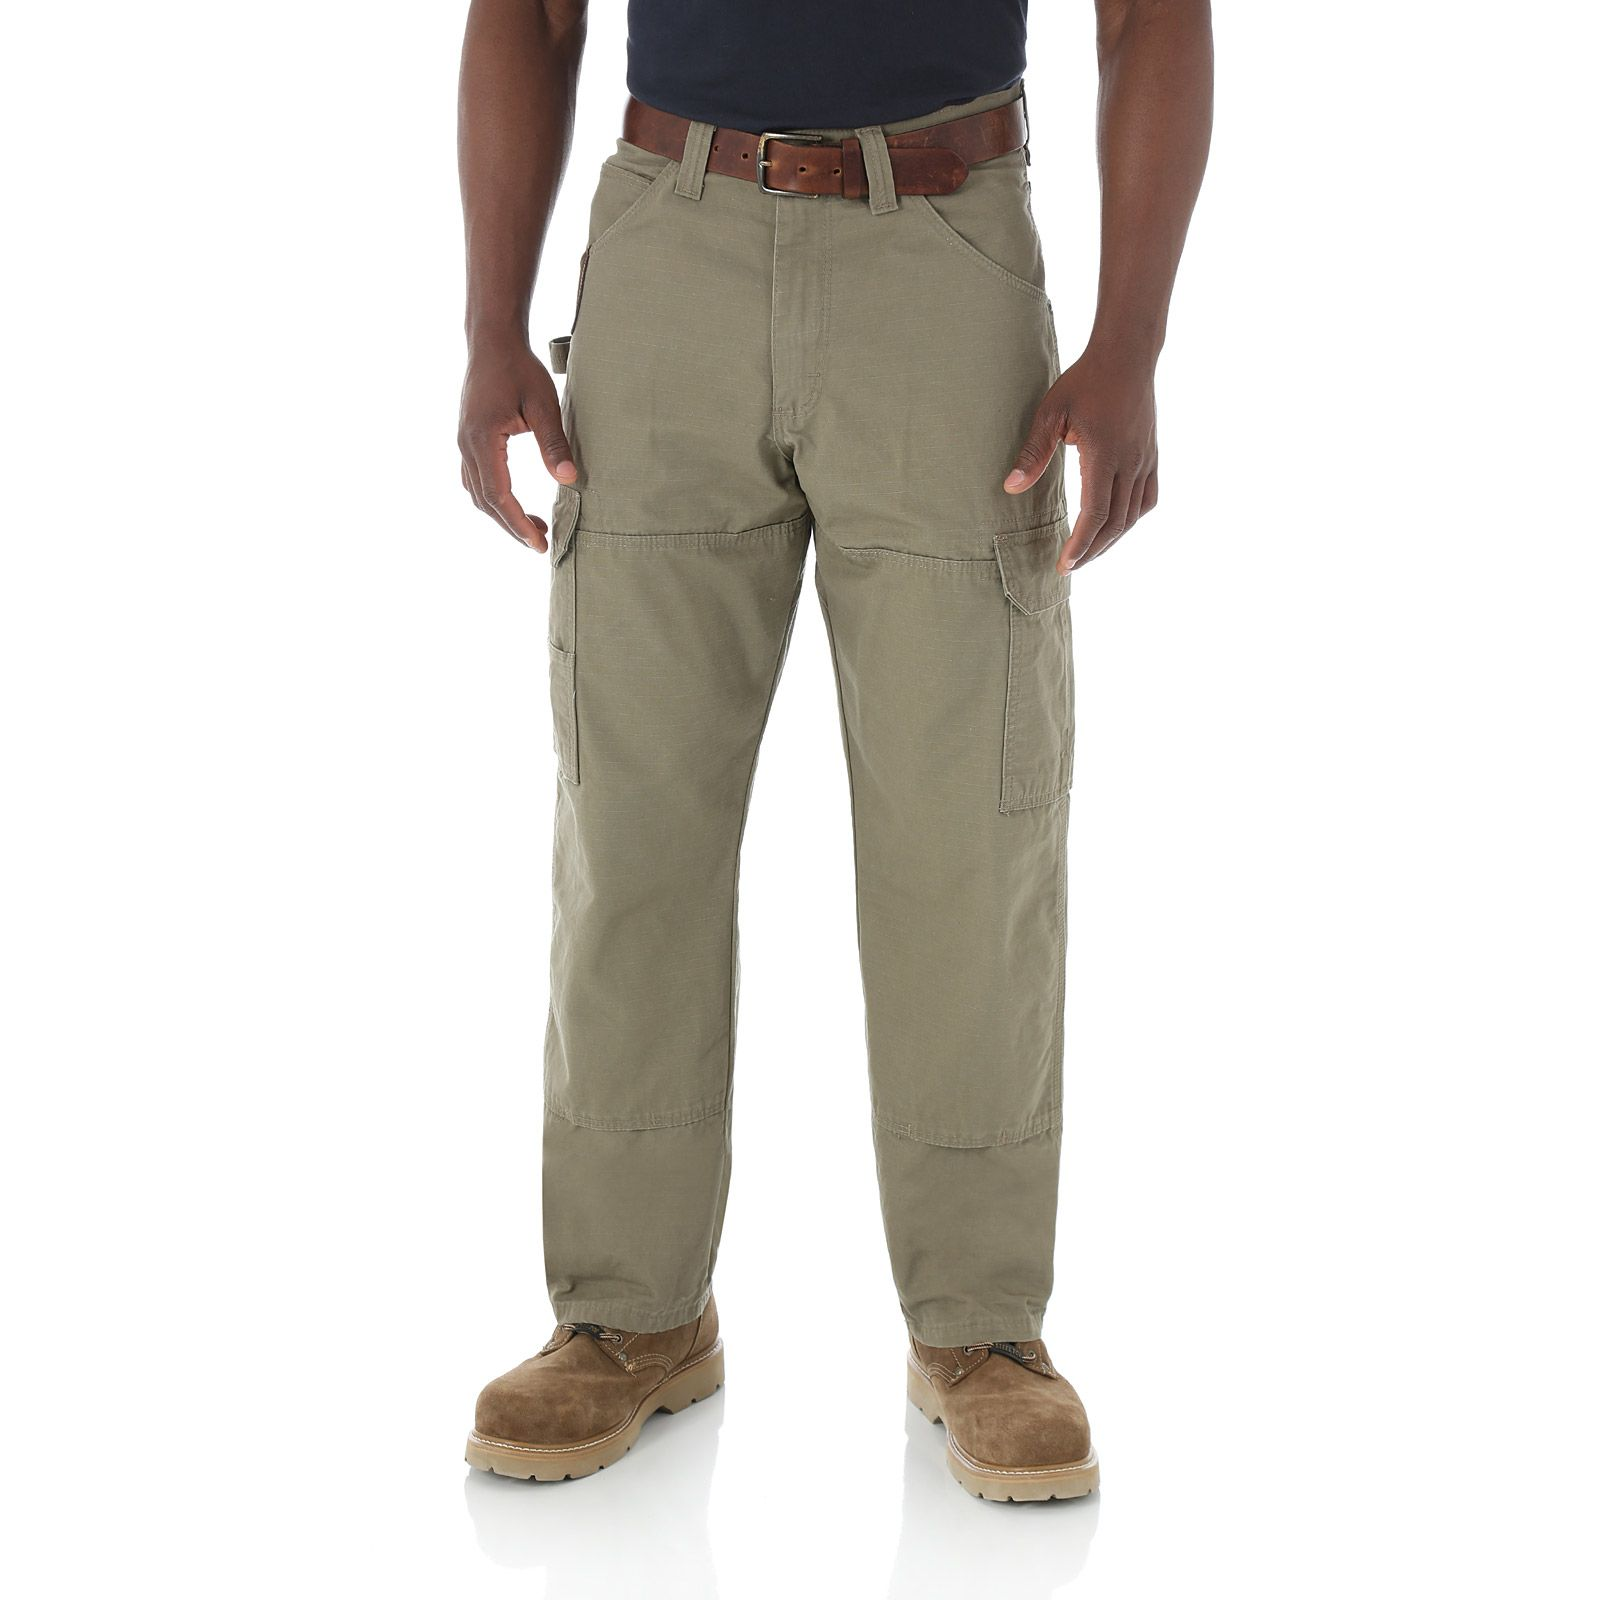 cargo khaki pants for men - Pi Pants